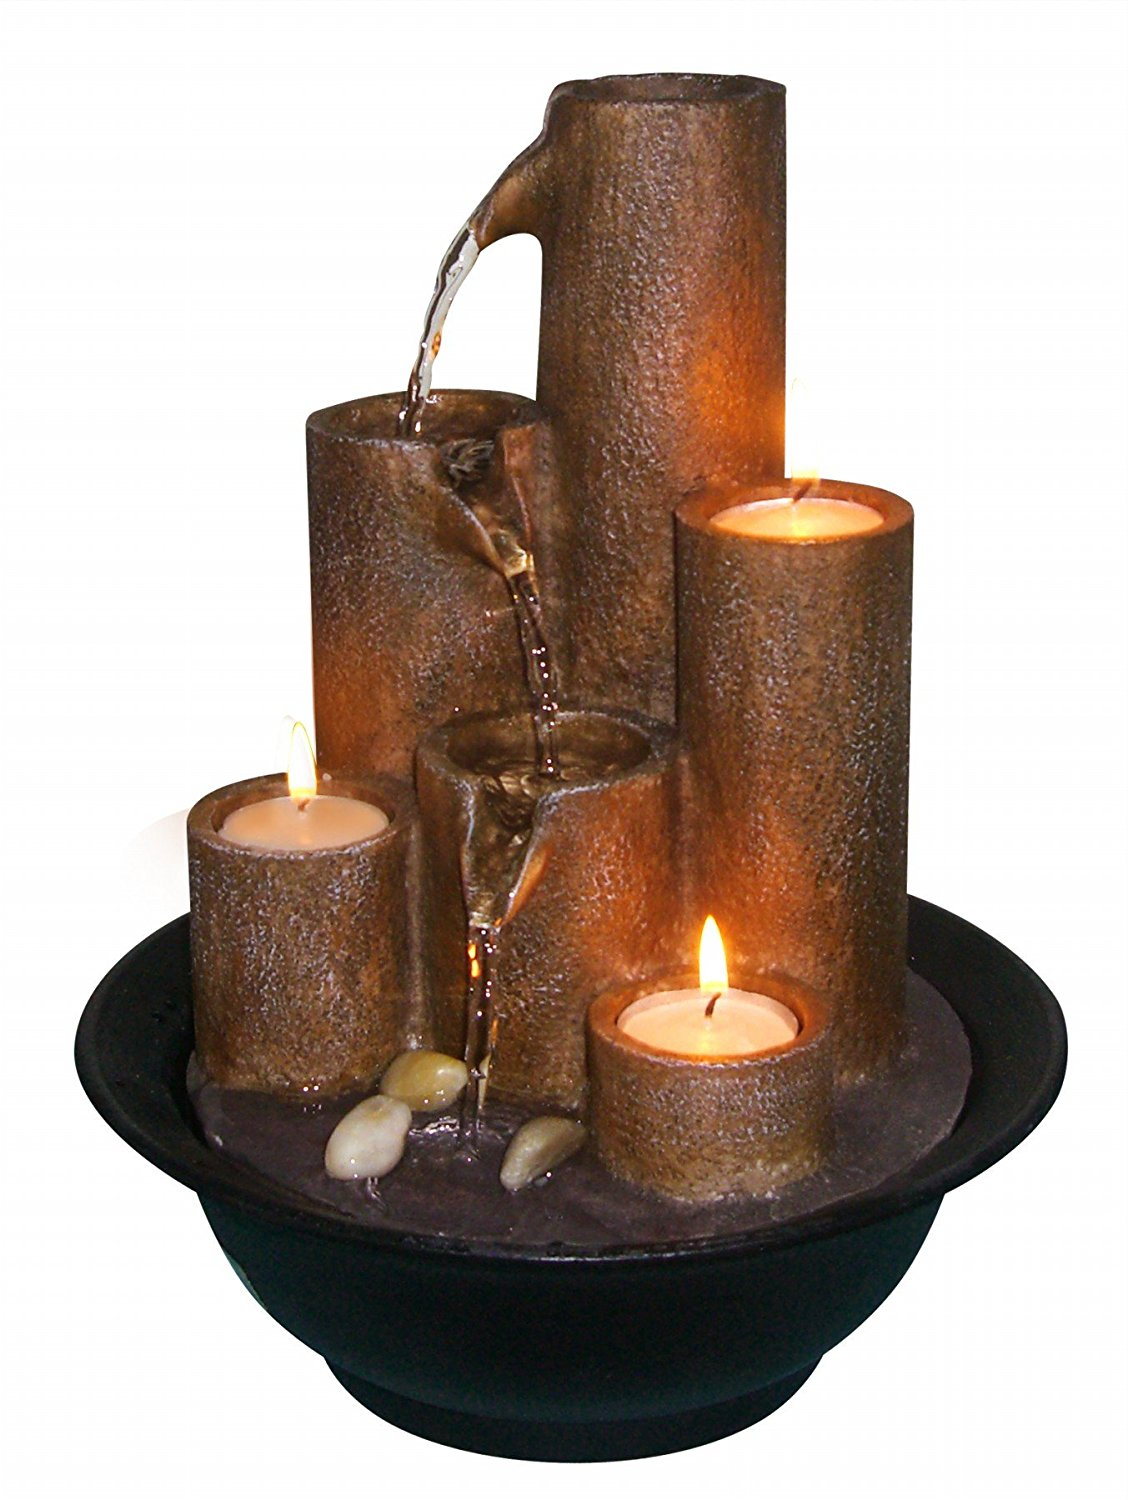 WCT202 Tiered Column Tabletop Fountain with 3-Candles, Made of Cast Stone Resin By Alpine by